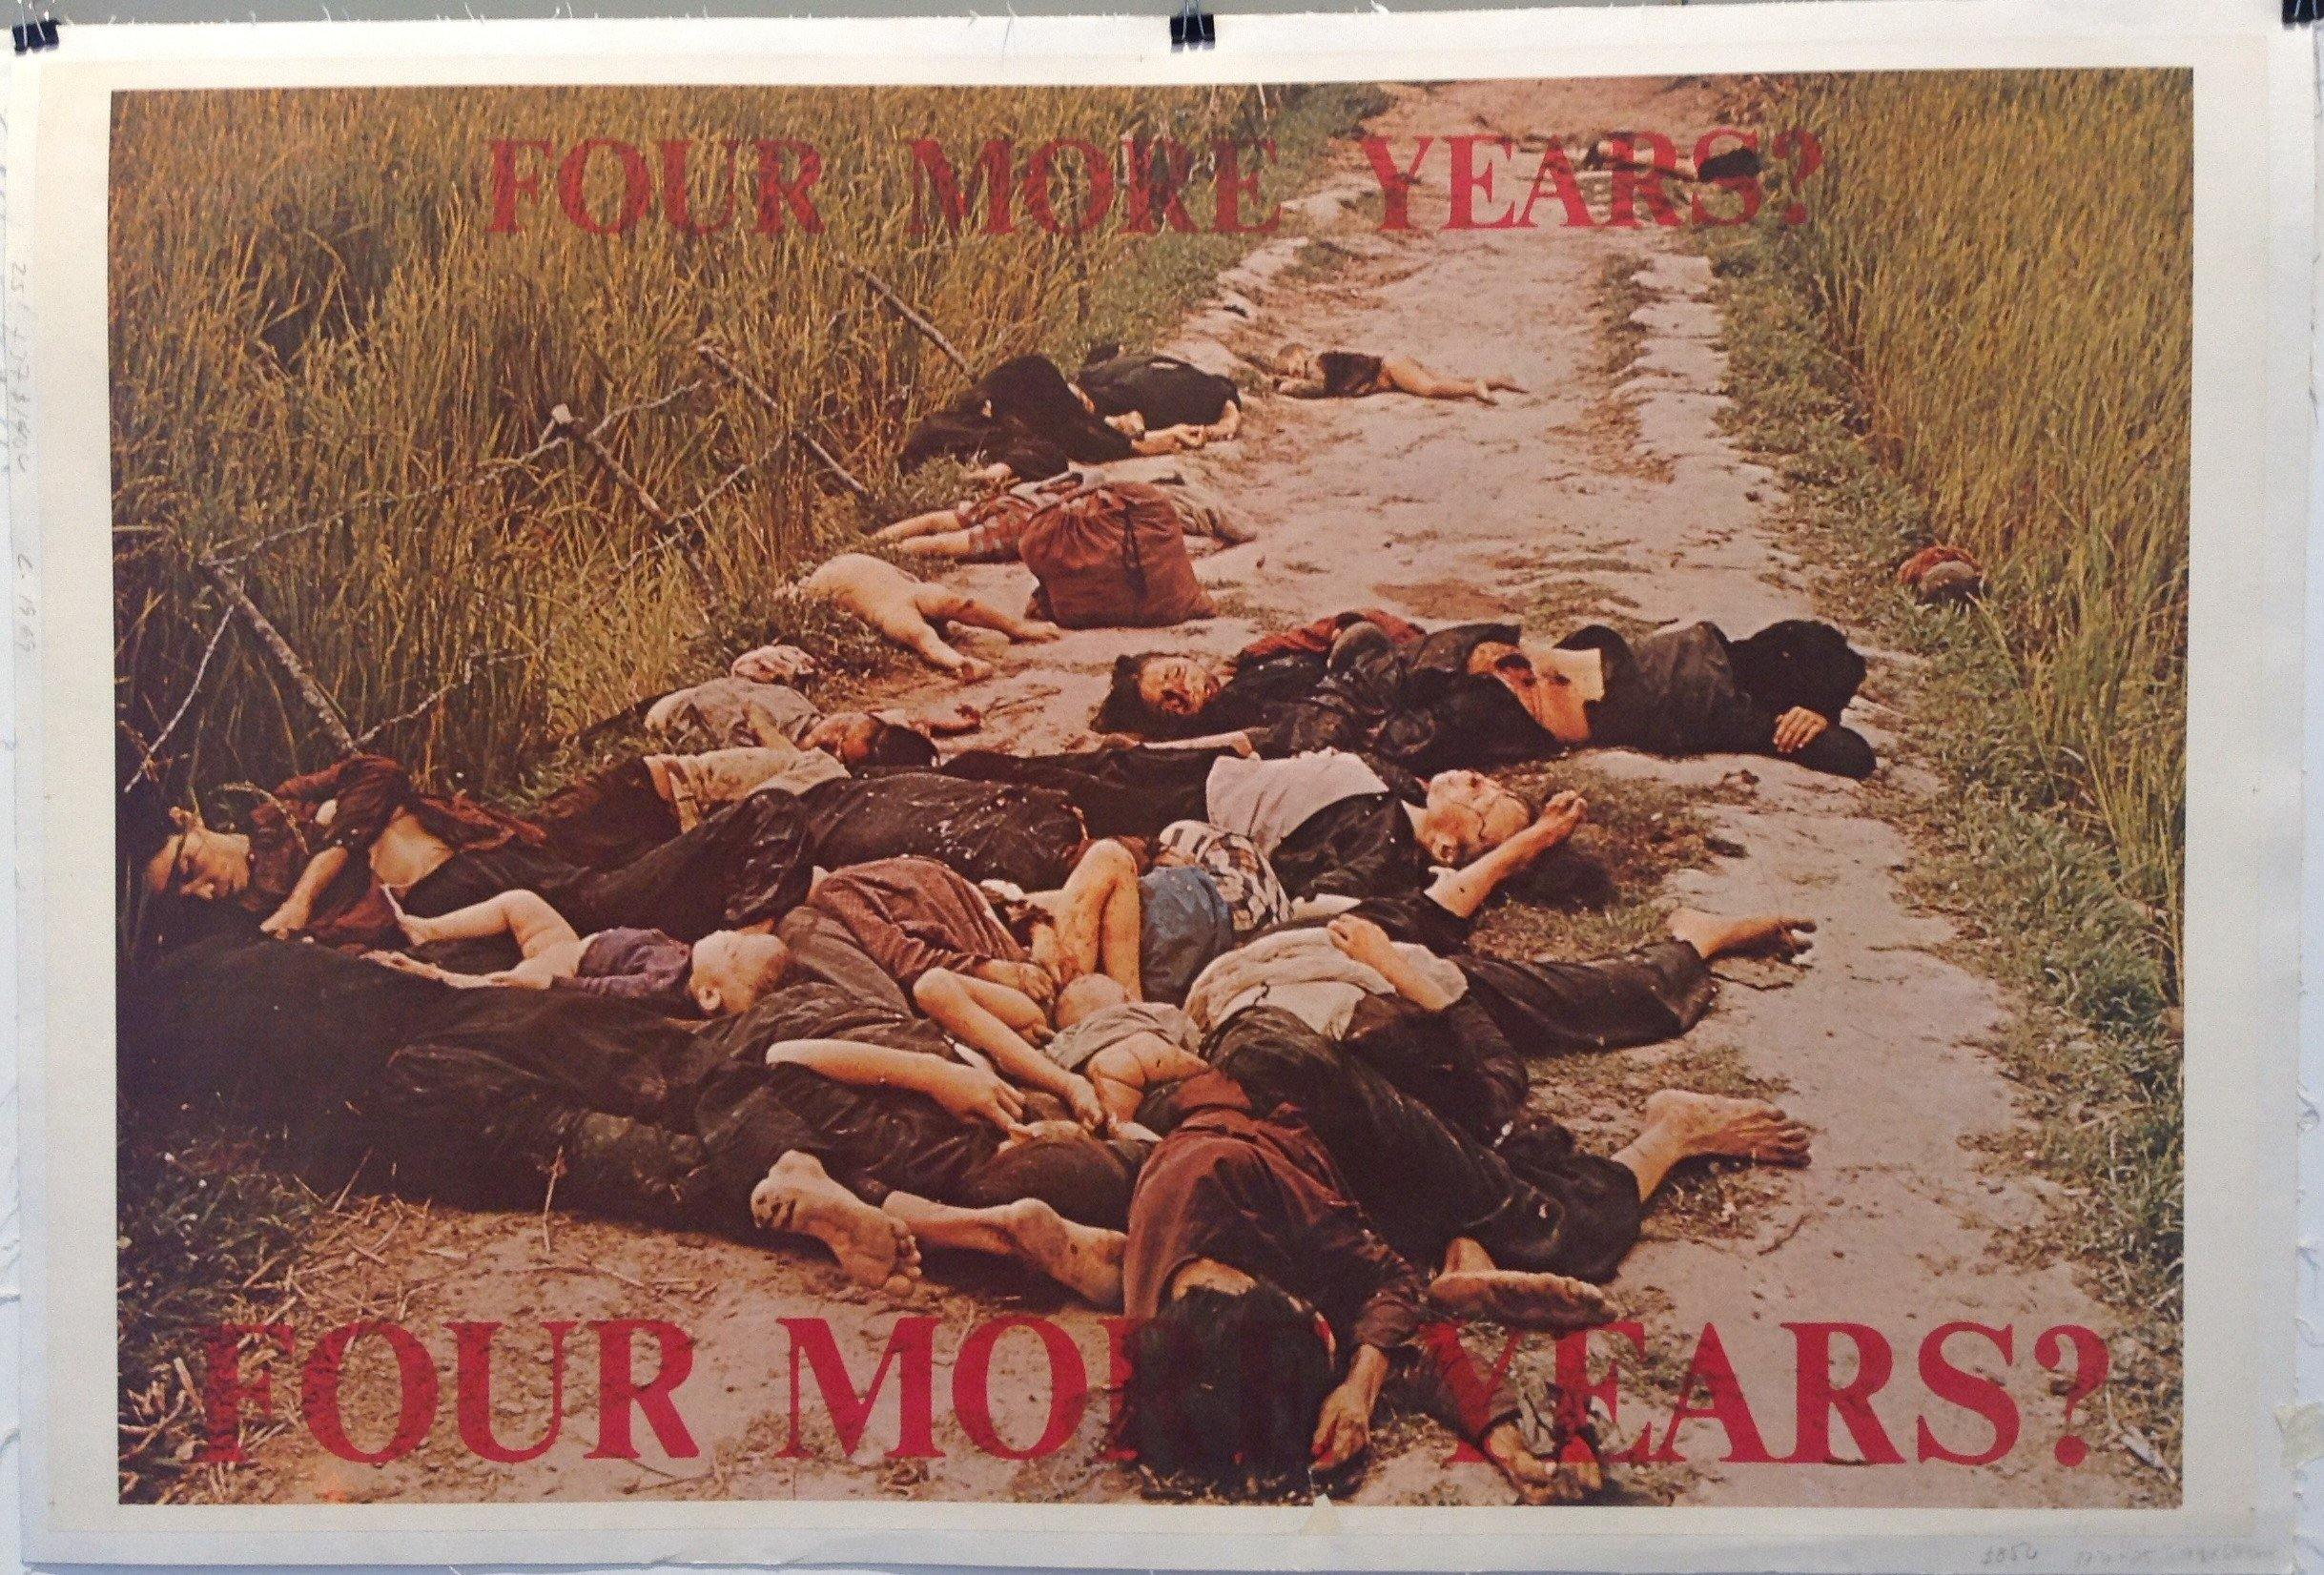 Four More Years? FOUR MORE YEARS? (My Lai Massacre)